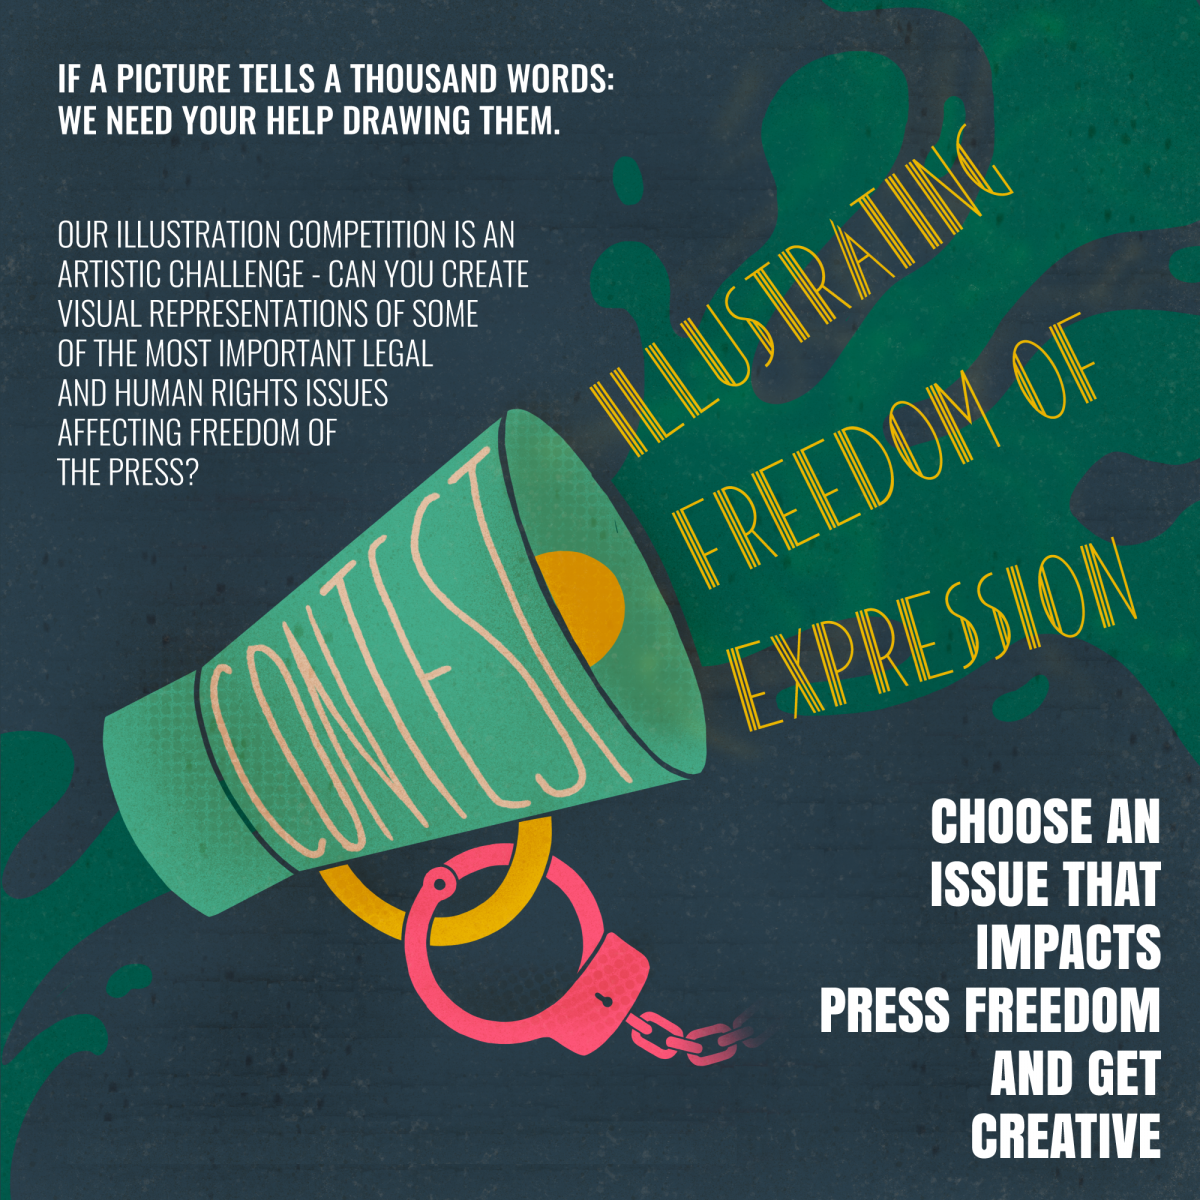 Illustrating Freedom of Expression Competition